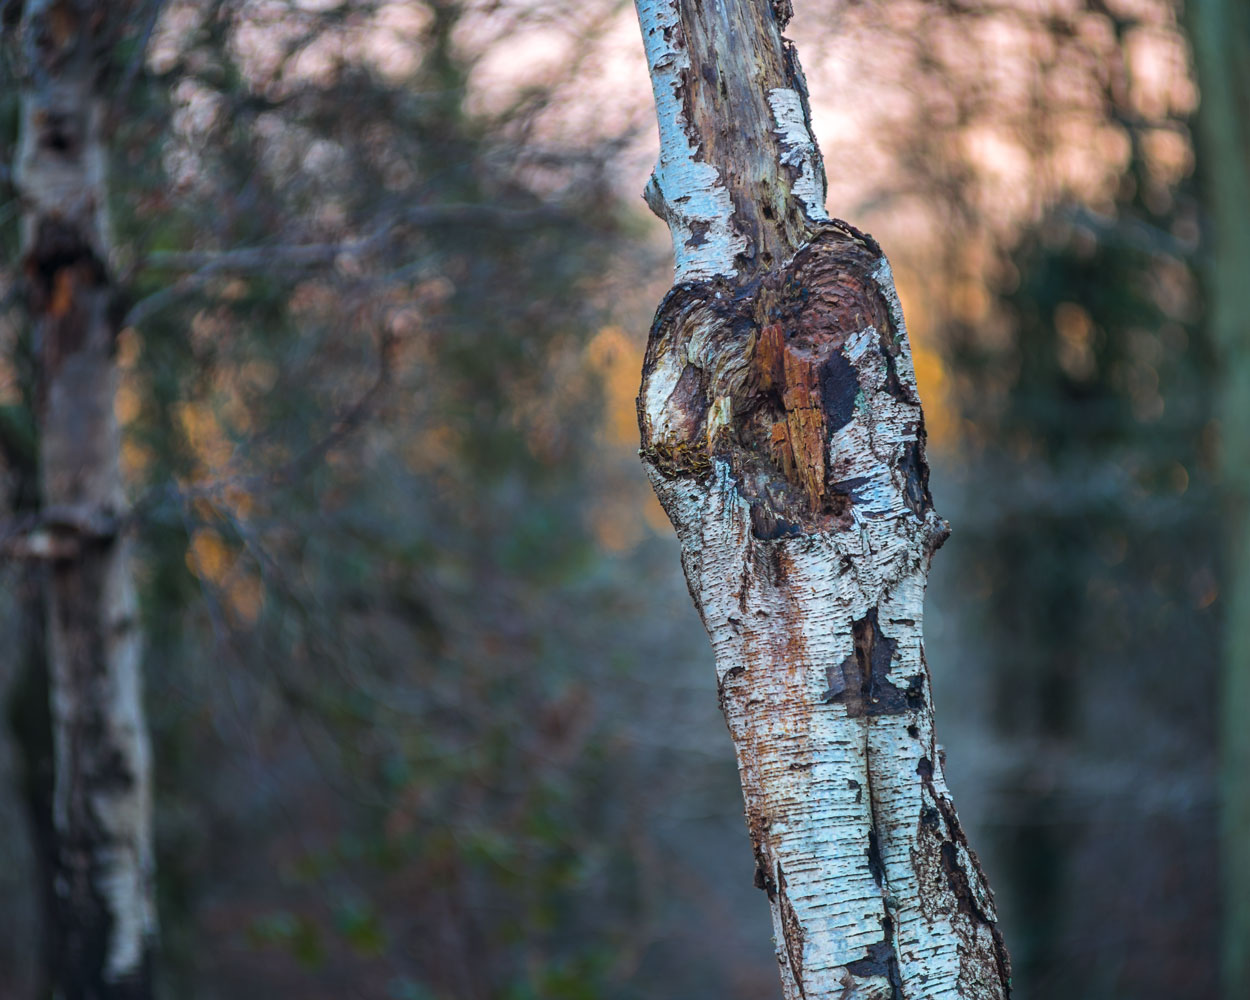 Woodlands Photography - Ruislip Woodlands